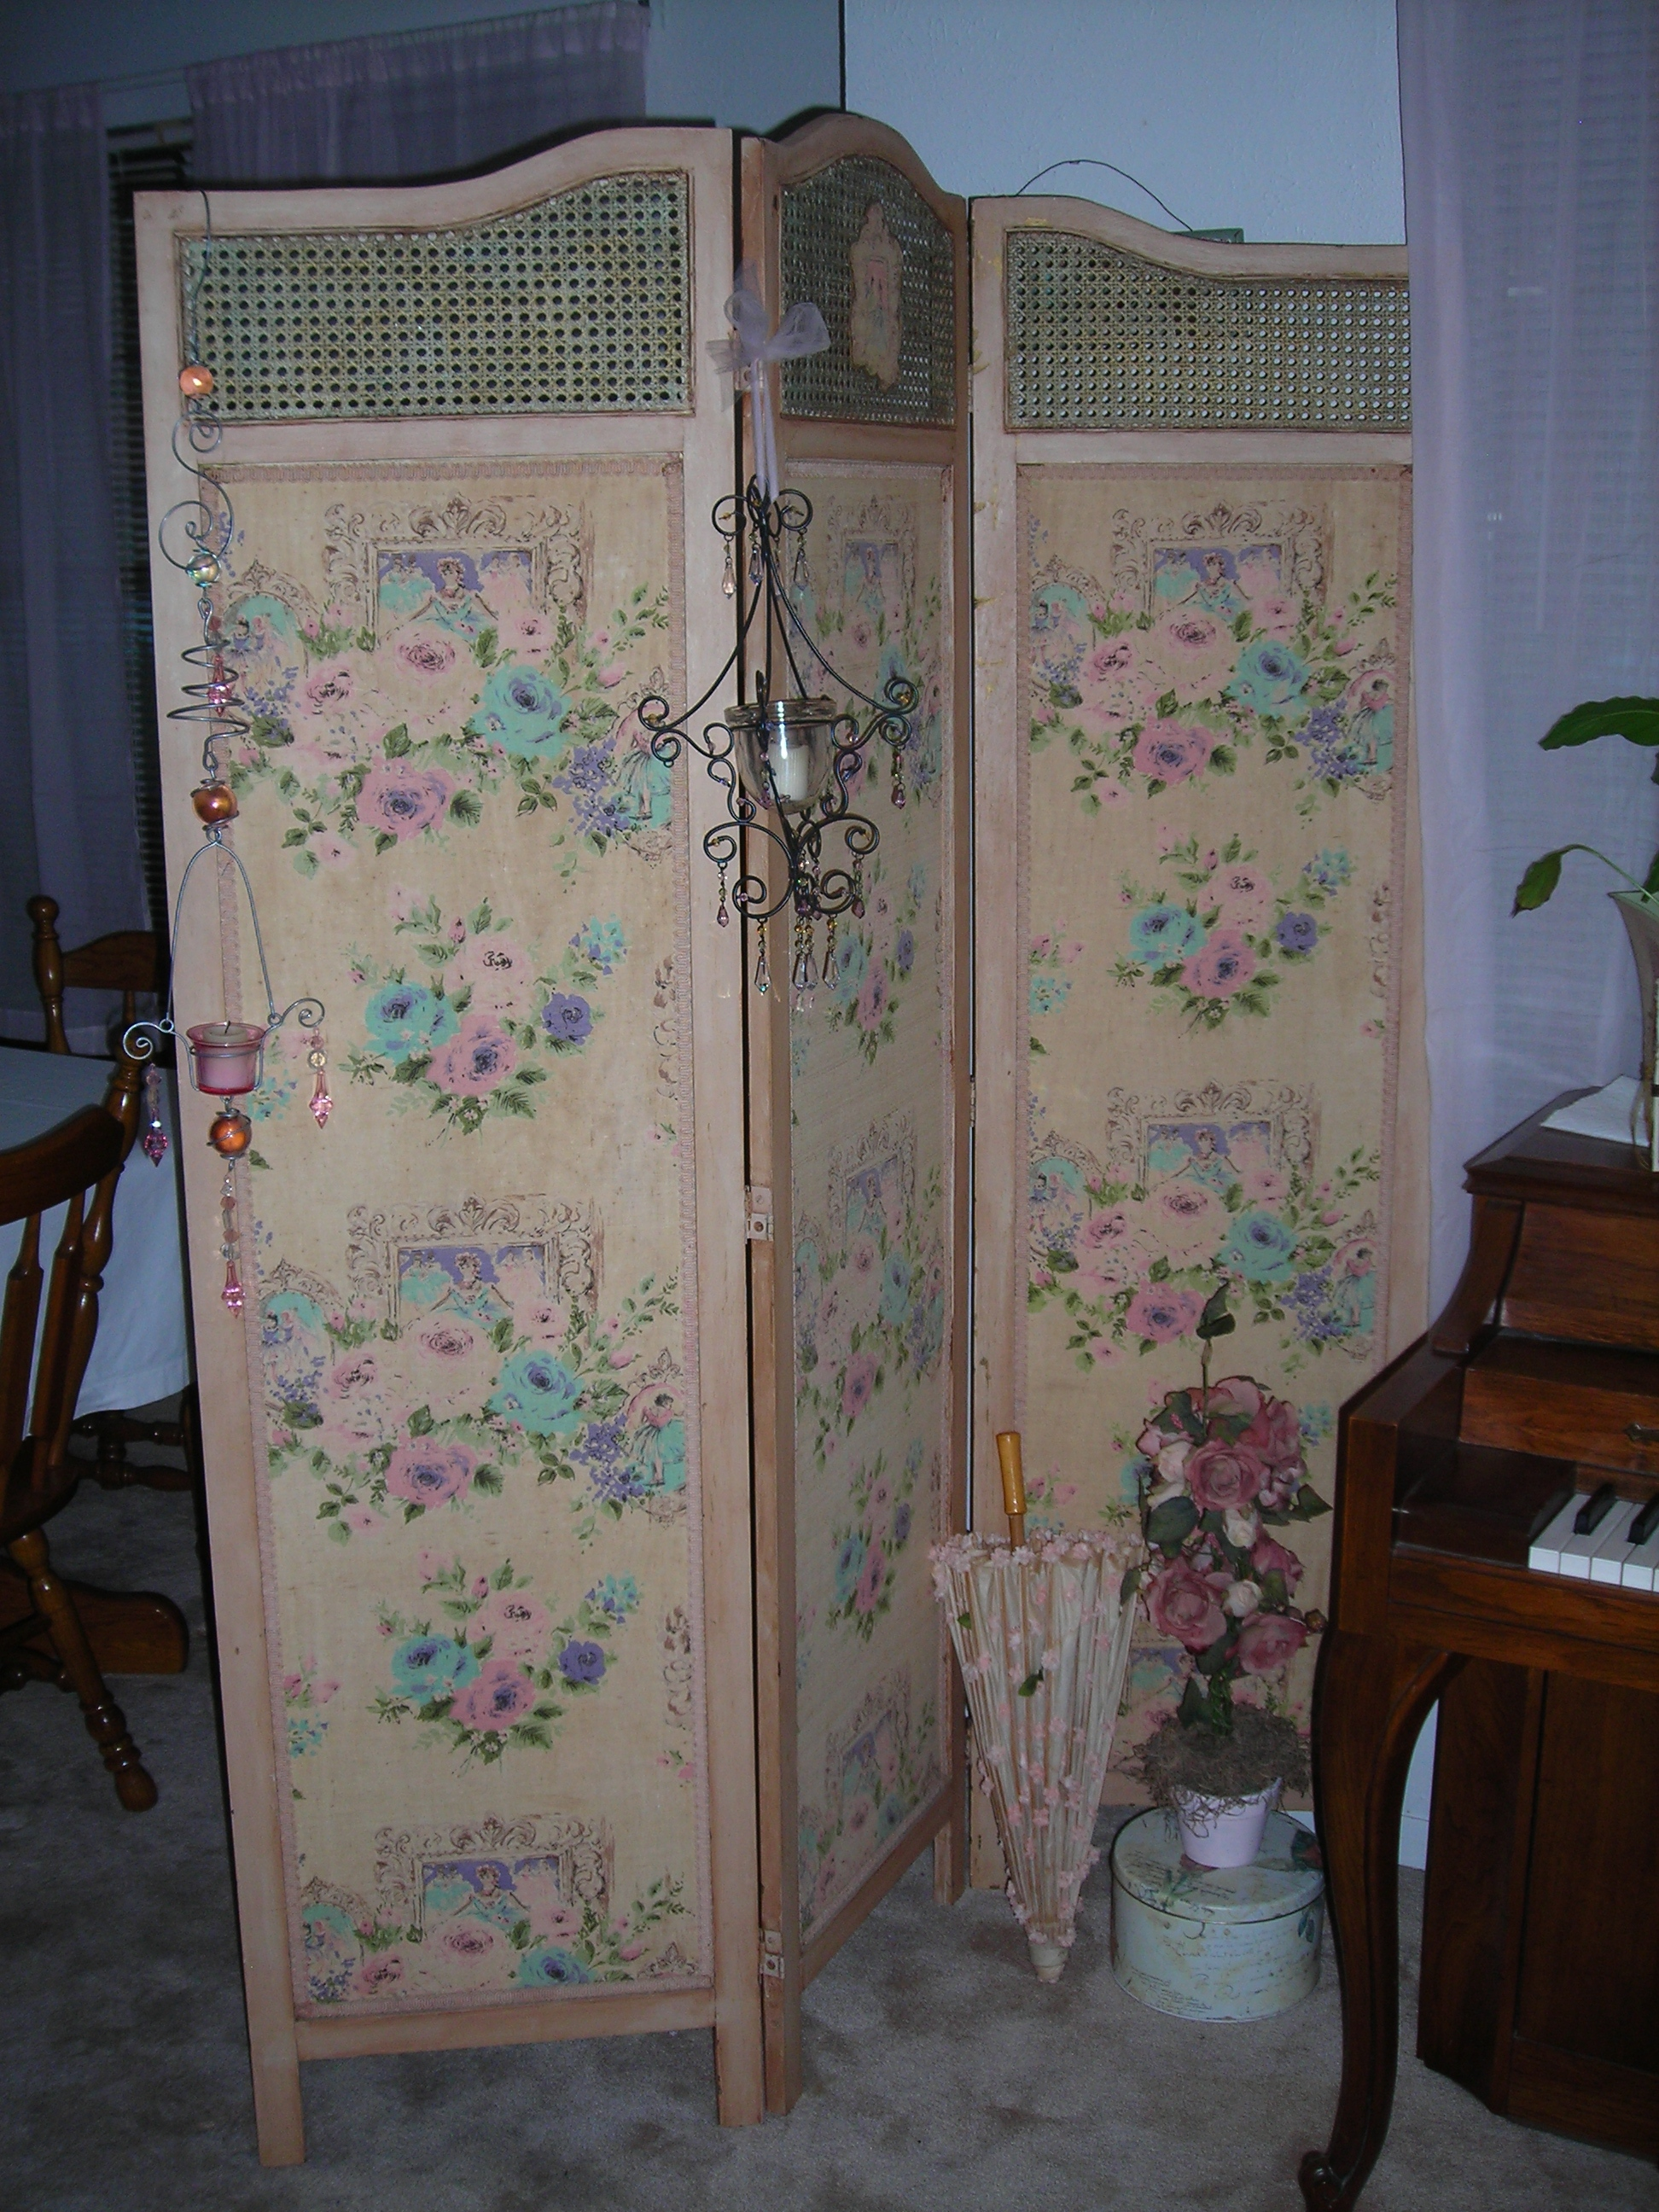 I absolutely LOVE this antique room divider. Got it at the antique show at the Expo in Belton a couple of years ago. It has sweet pink and blue Victorian ladies on the panels. Ohmygosh!!